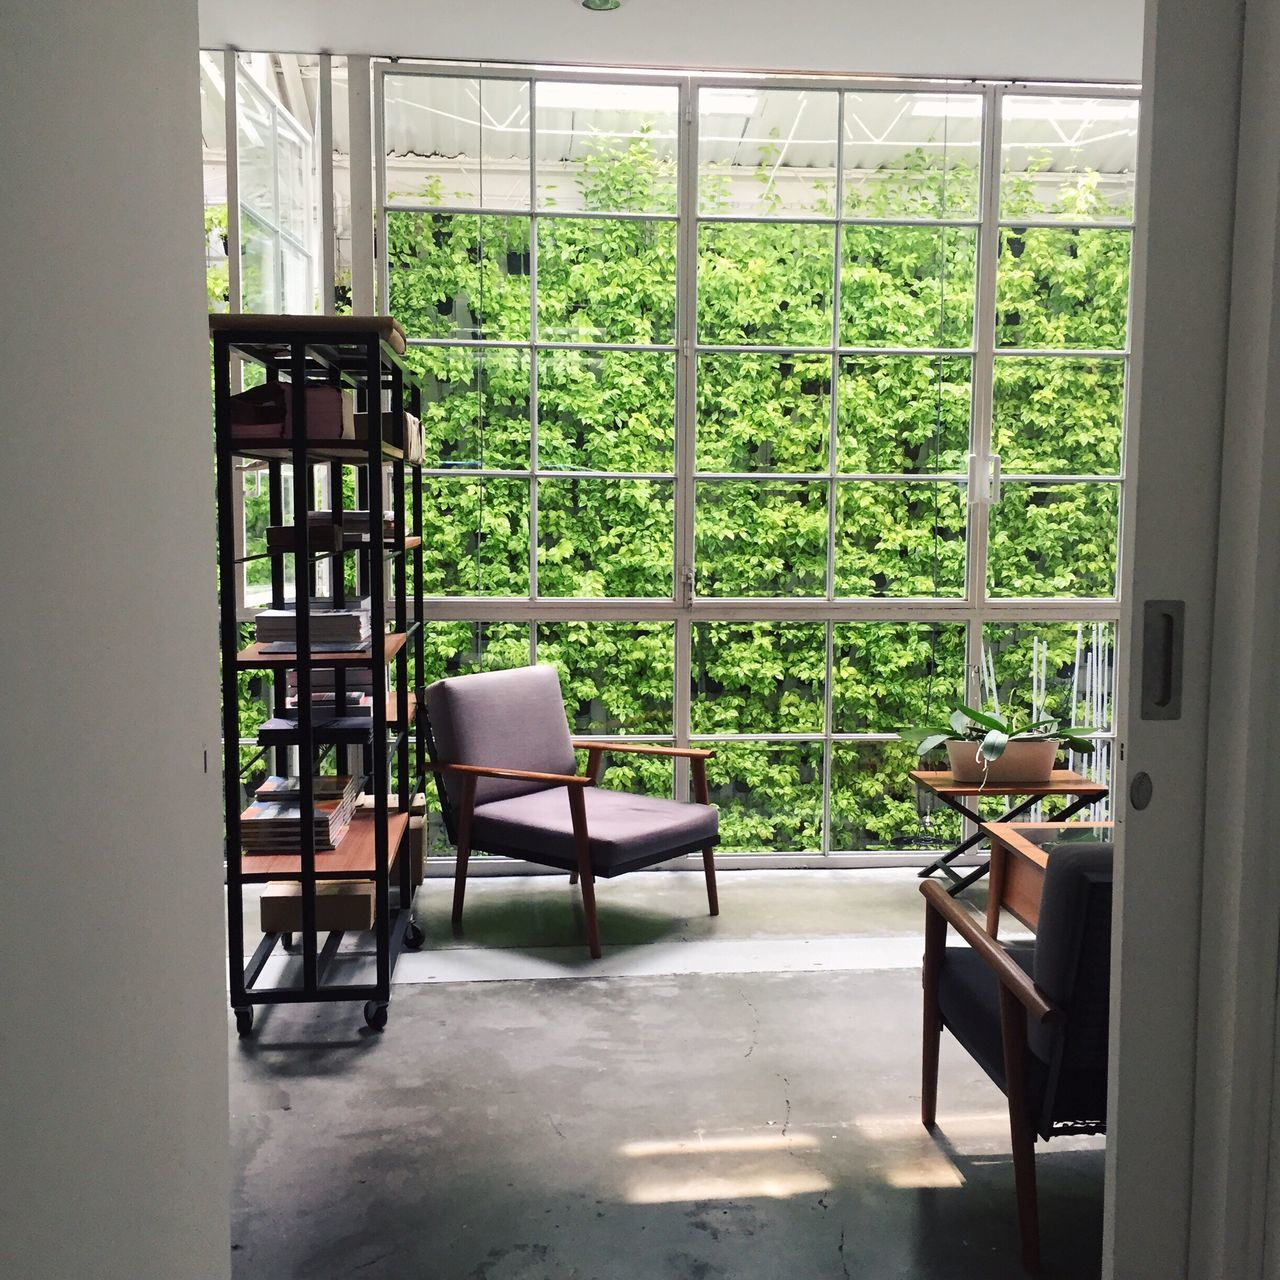 chair, window, indoors, home interior, table, no people, day, furniture, tree, nature